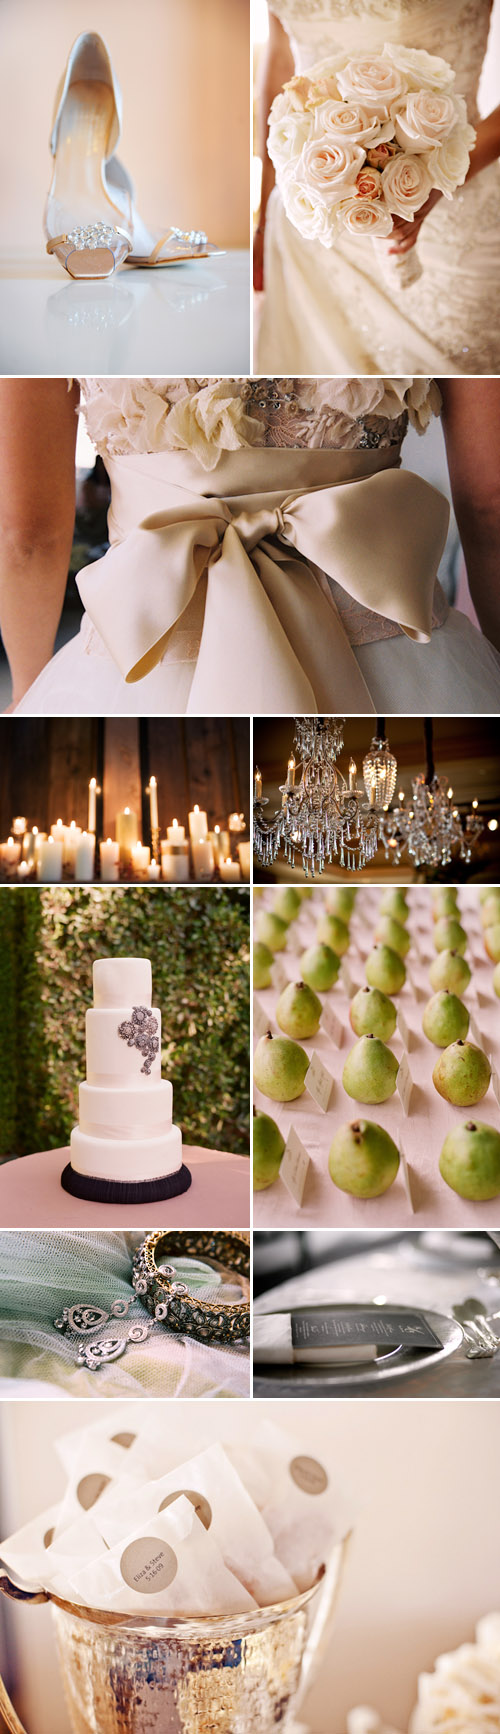 elegant ivory, champagne, silver and candle light wedding color palette inspiration board